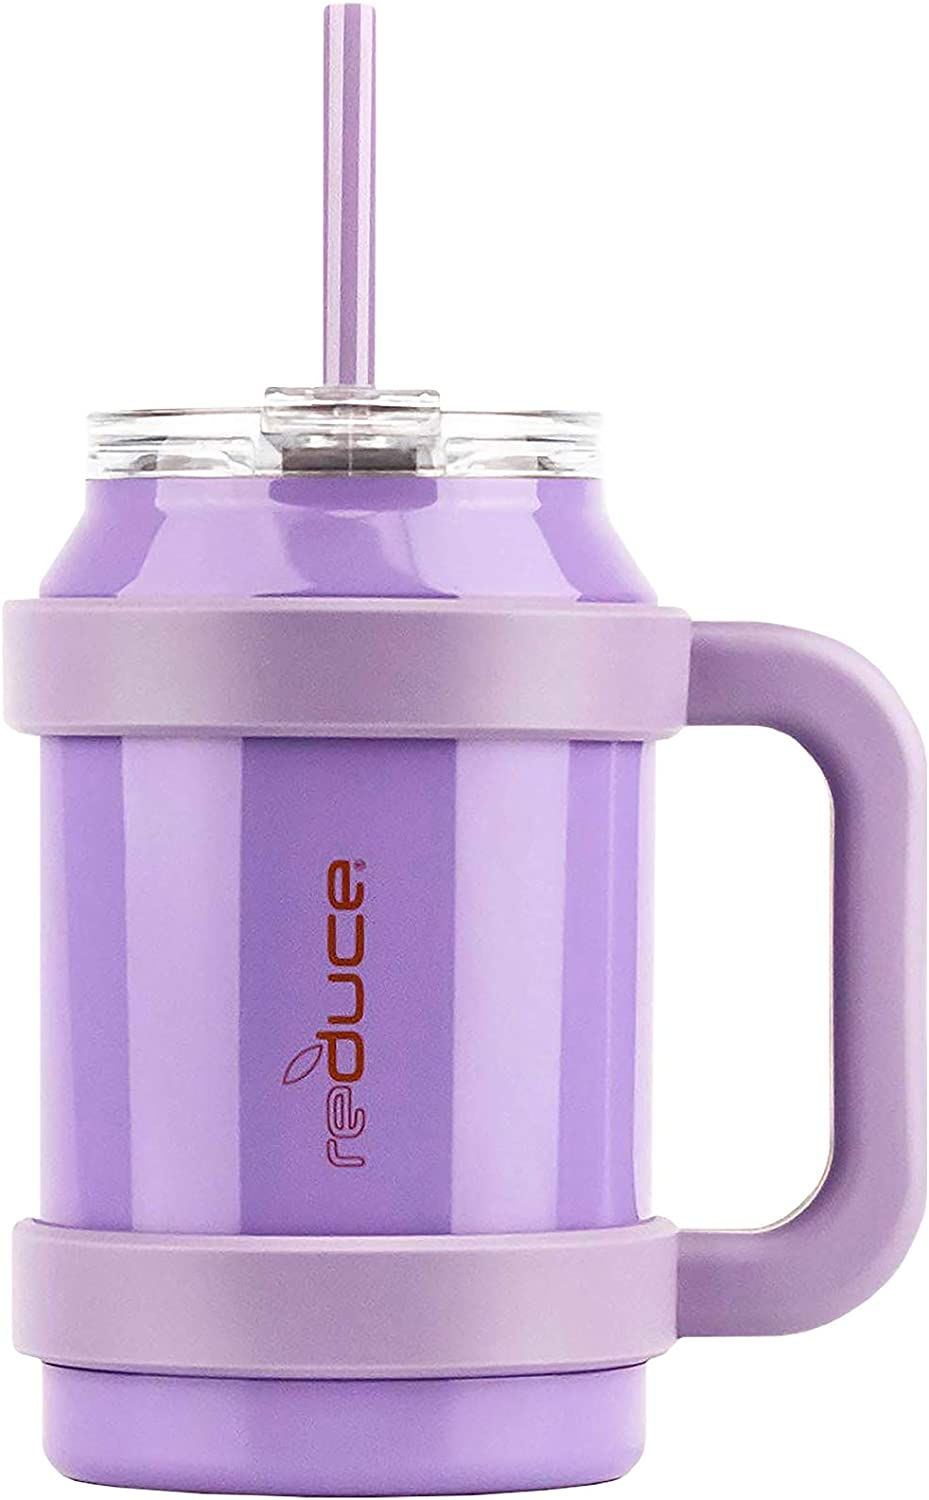 Reduce Cold1 32oz Large Water Mug With Straw and Easy-Carry Handle – Perfect Large Tumbler for Hot and Cold Drinks, 30 Hours Cold – Sweat-Proof Body, Leak-Proof Lid, BPA Free–Opaque Gloss Purple